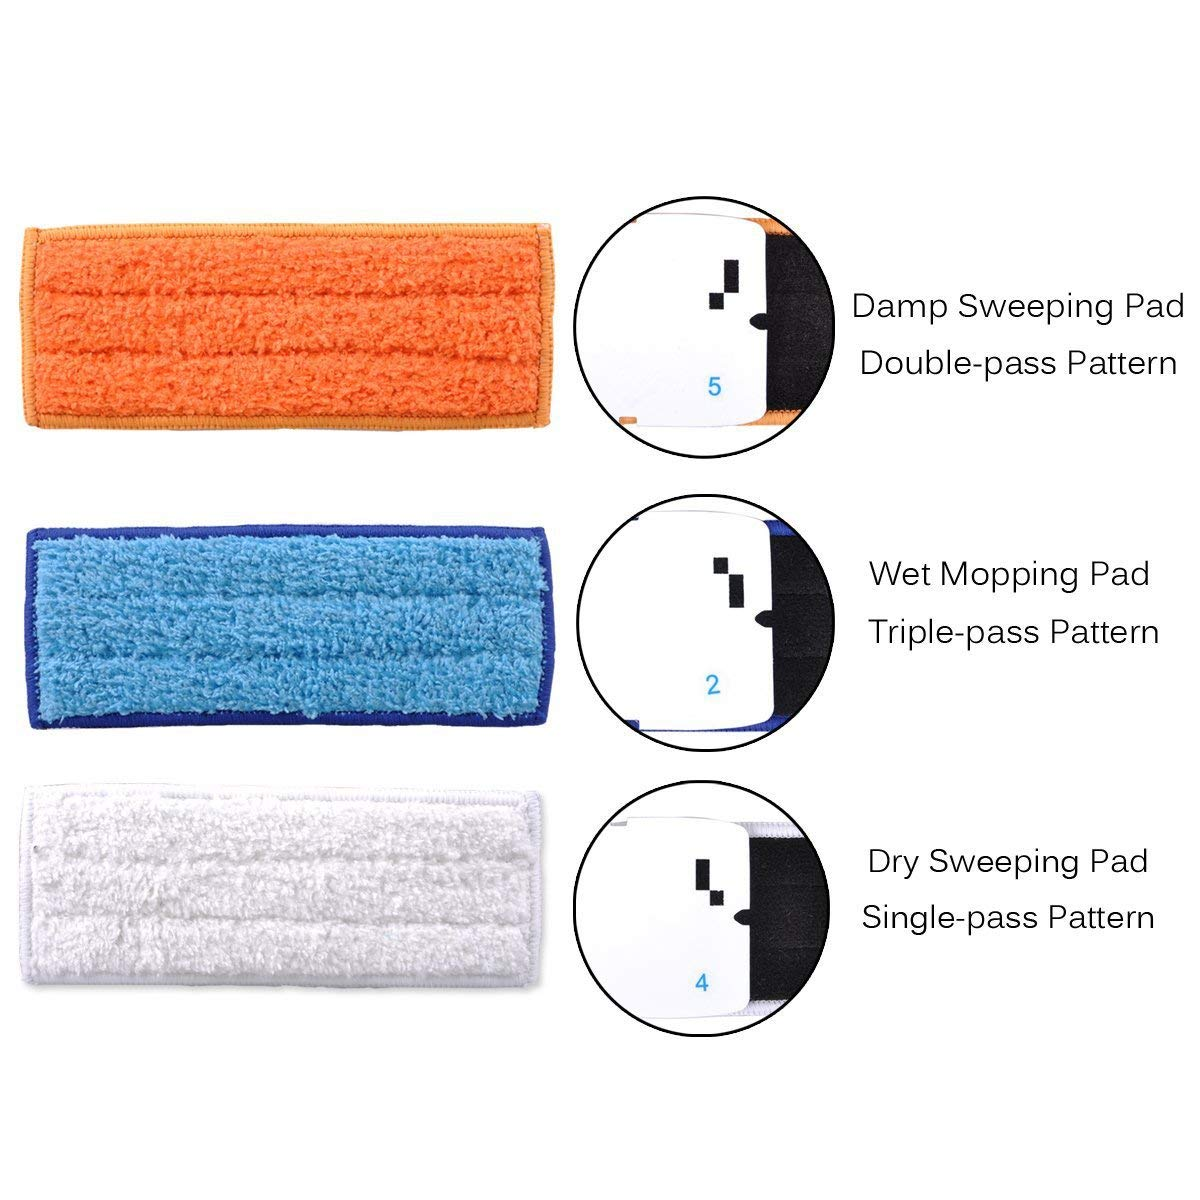 Adouiry Washable Mopping Pads for IRobot Braava Jet 240 Sweeping Pads, Reusable Wet Damp Dry (12 PCS) by Adouiry (Image #2)